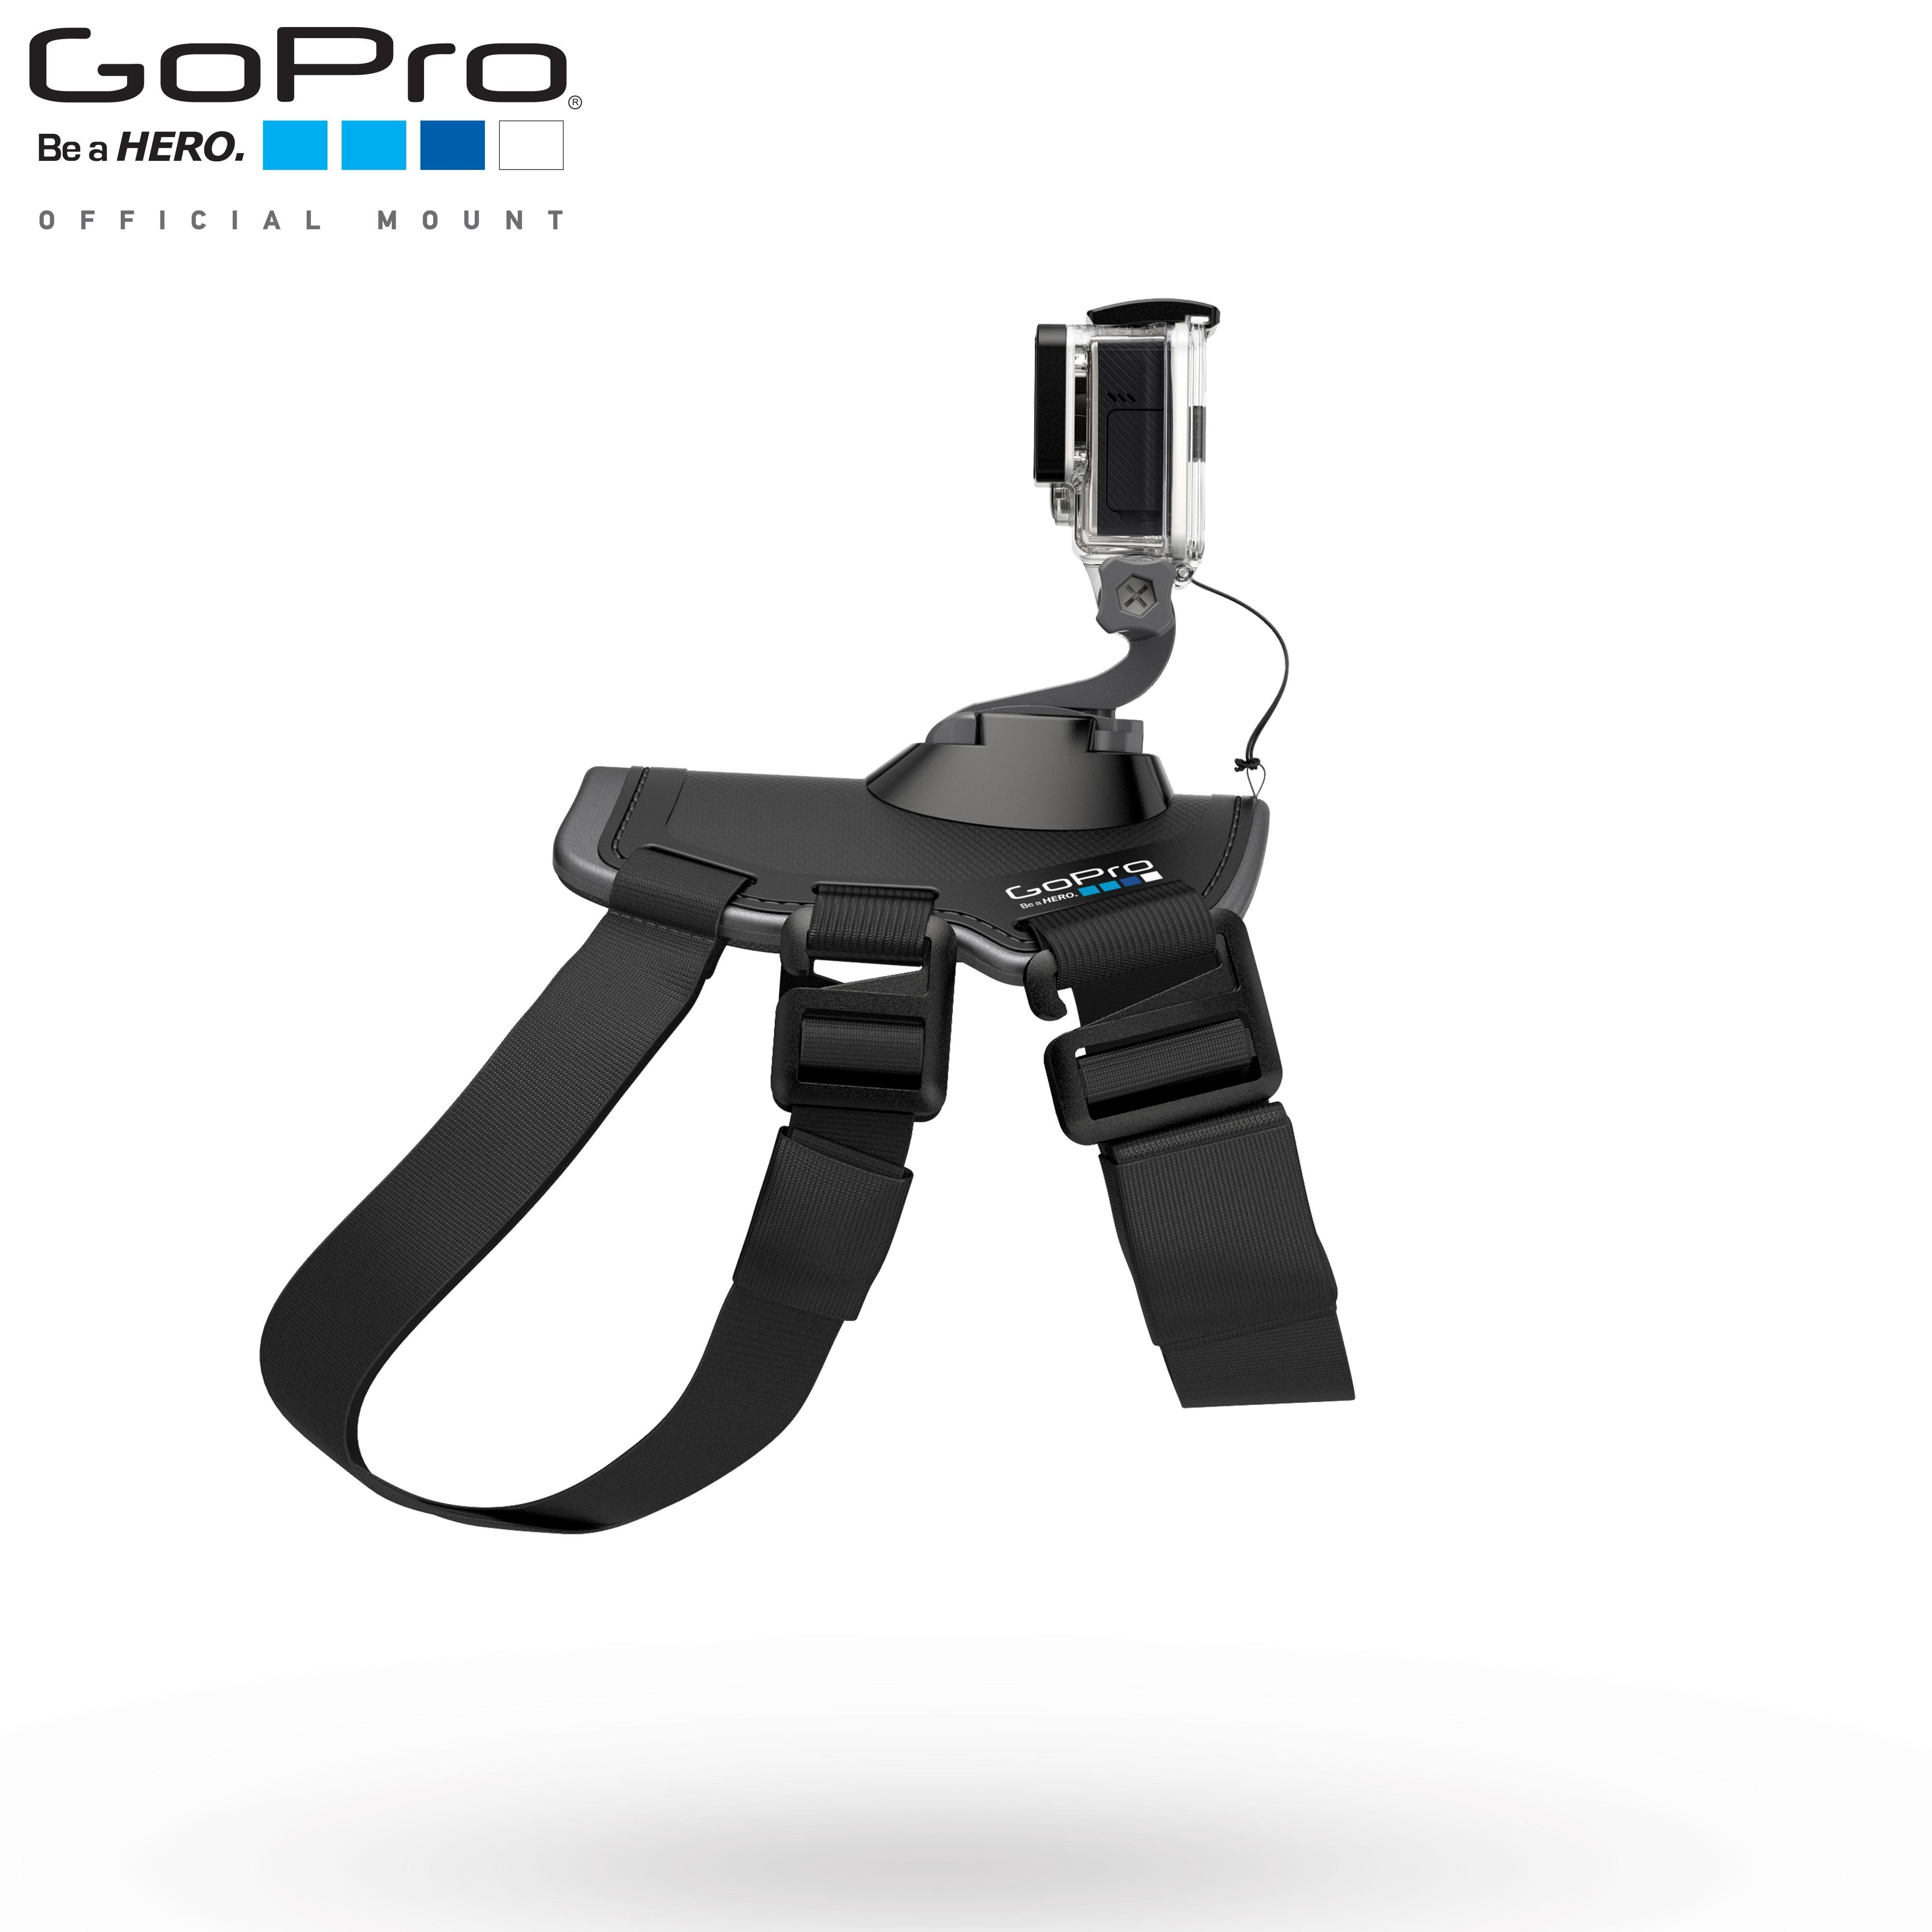 Amazon.com : GoPro Fetch (Dog Harness)(GoPro Official